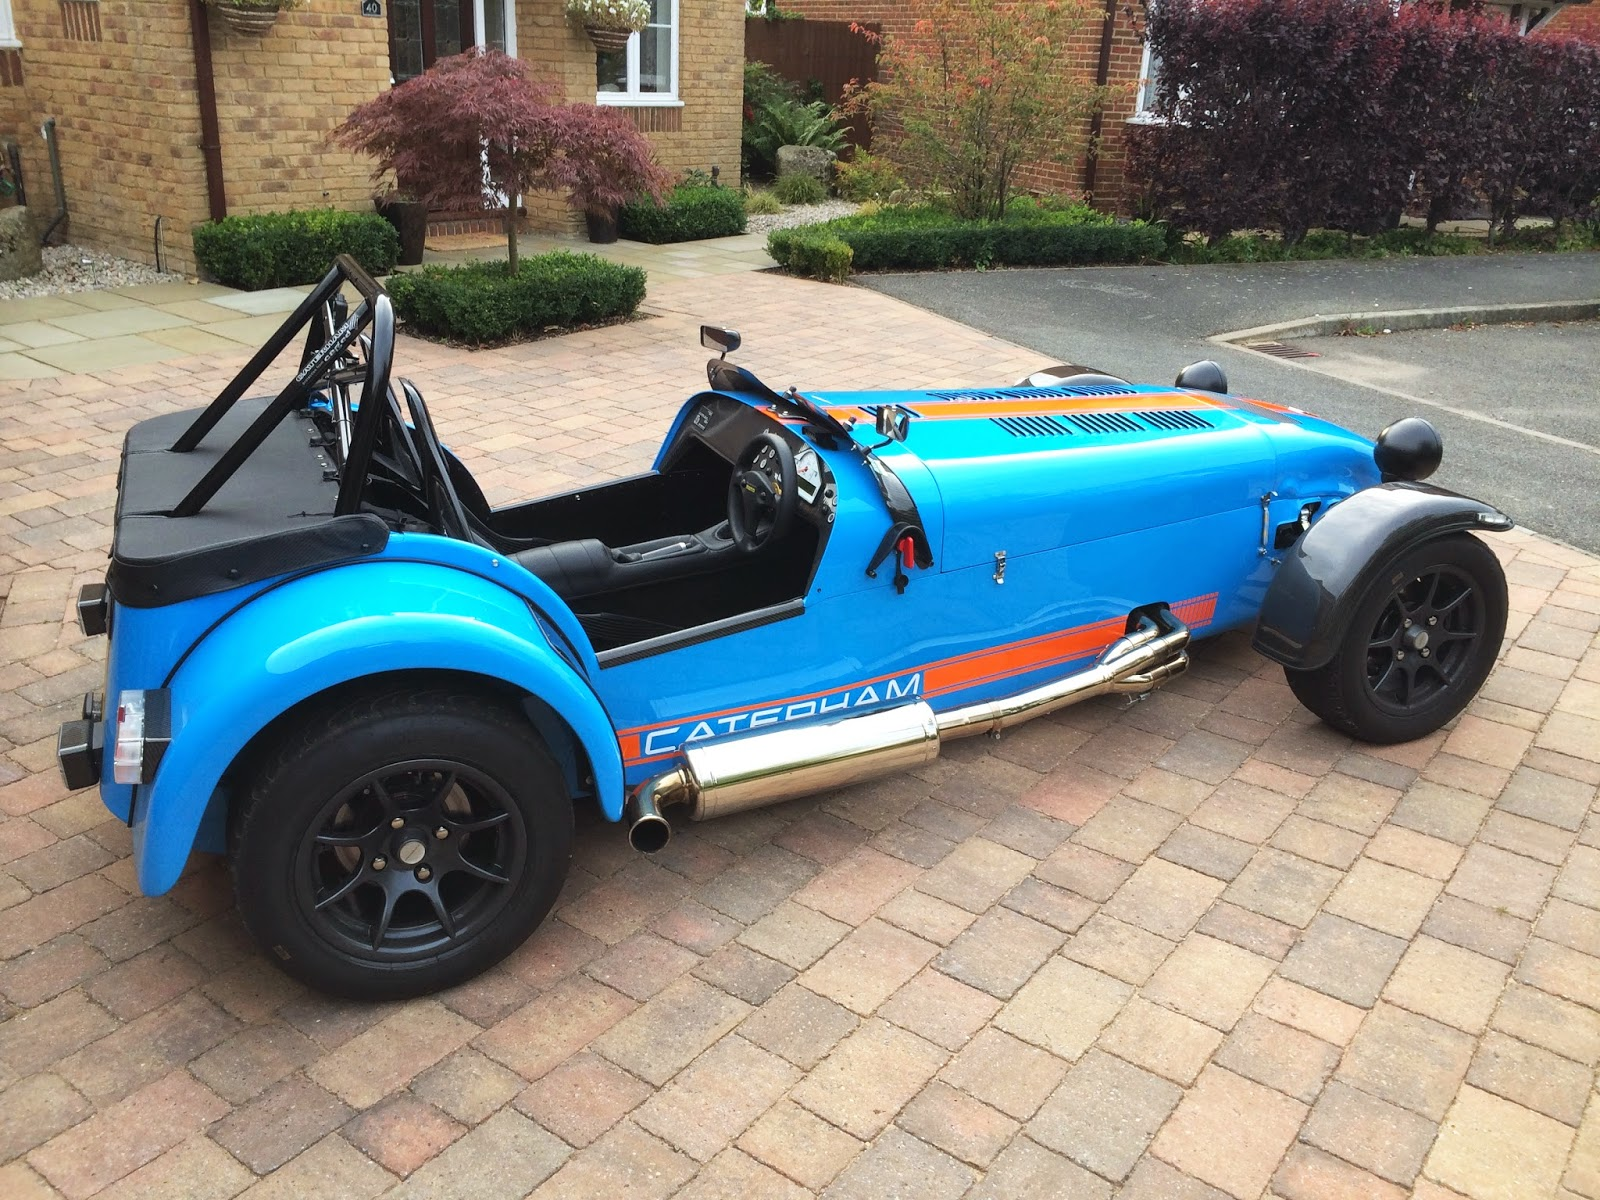 My Caterham R500 Duratec with Cat Bypass and Standard Silencer fitted.